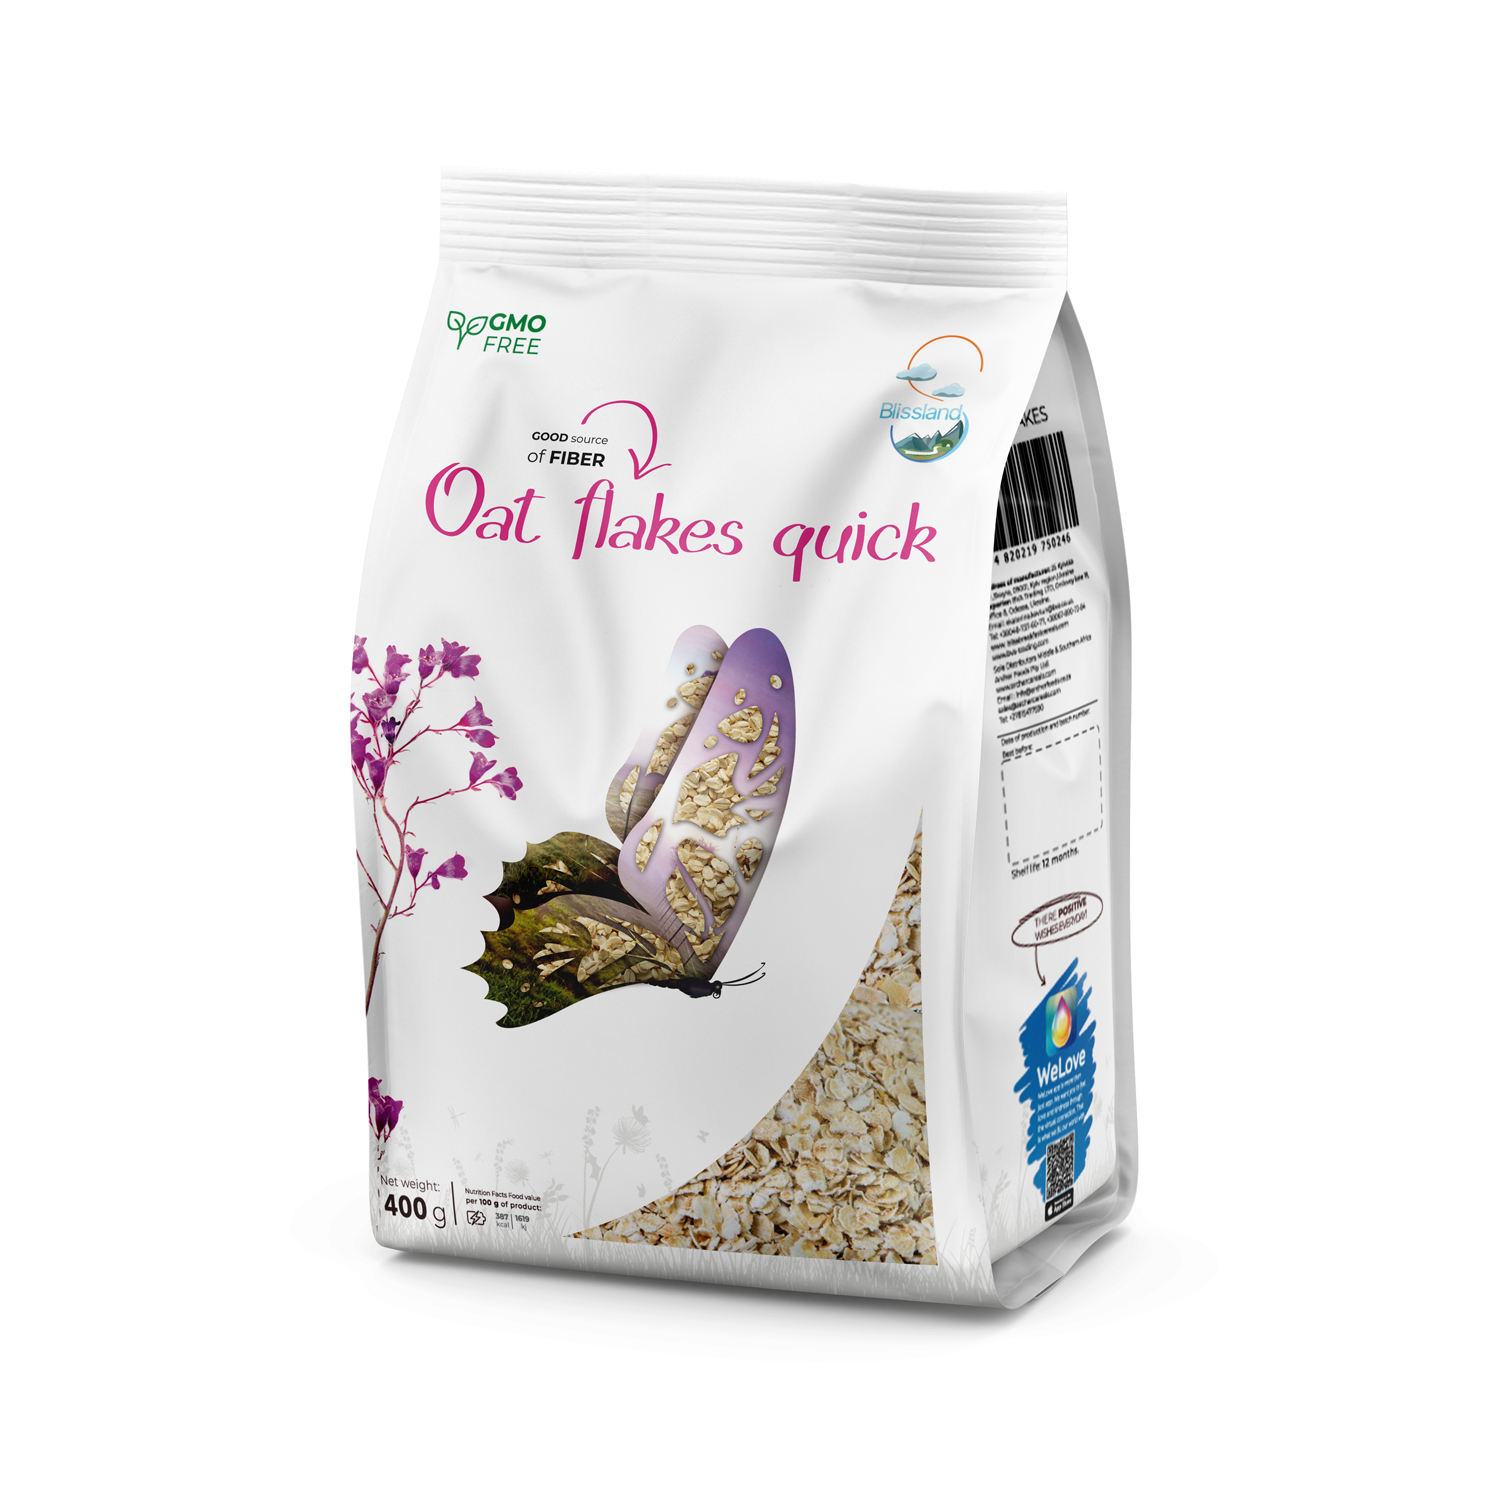 Oat flakes Quick breakfast cereal